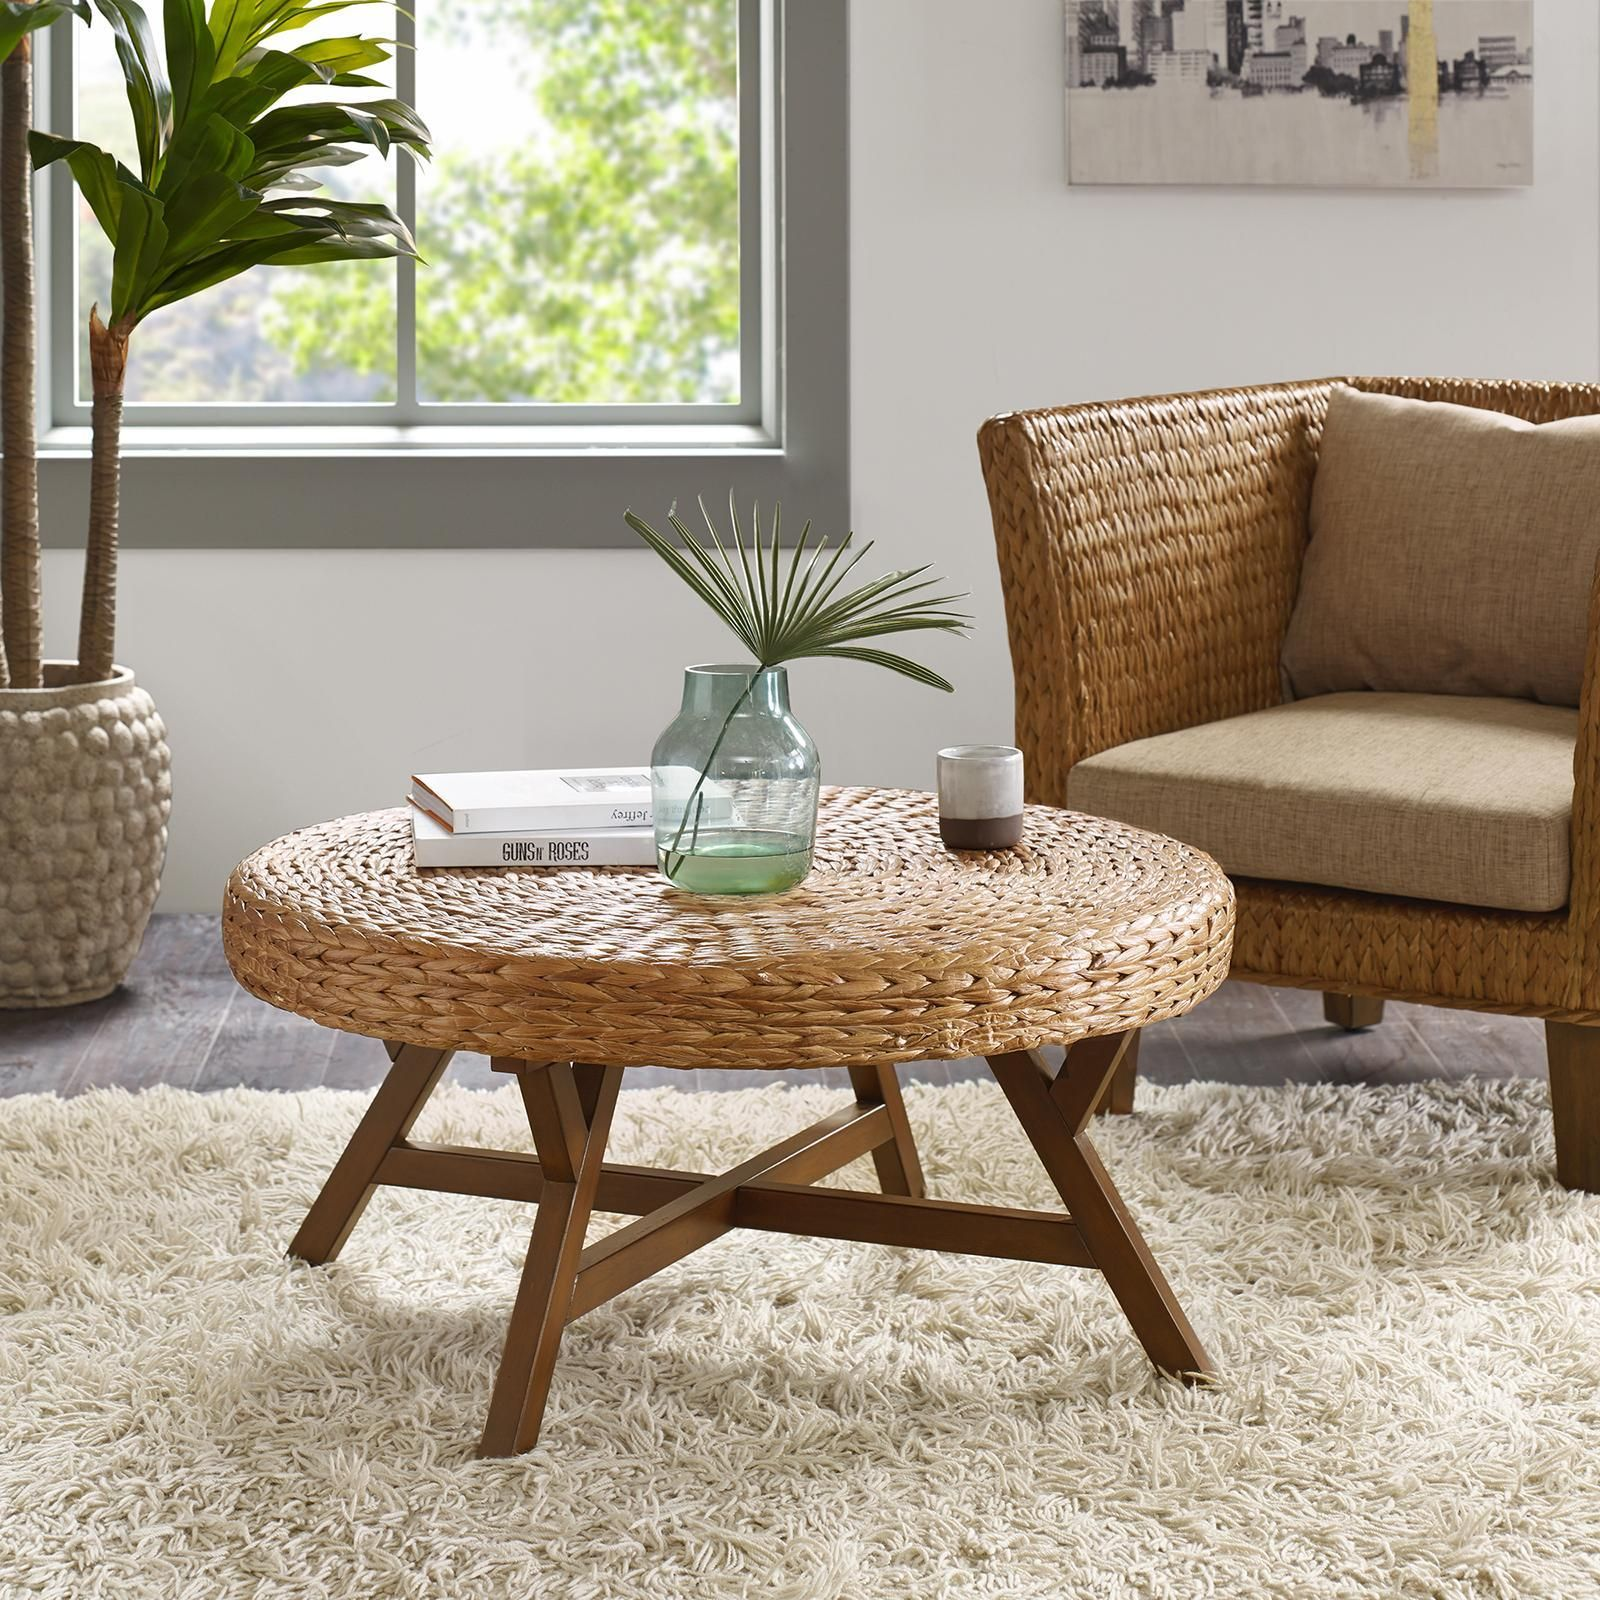 Pin By Polya Miron On Spalnya Coffee Table Rattan Coffee Table Ottoman Coffee Table [ 1600 x 1600 Pixel ]